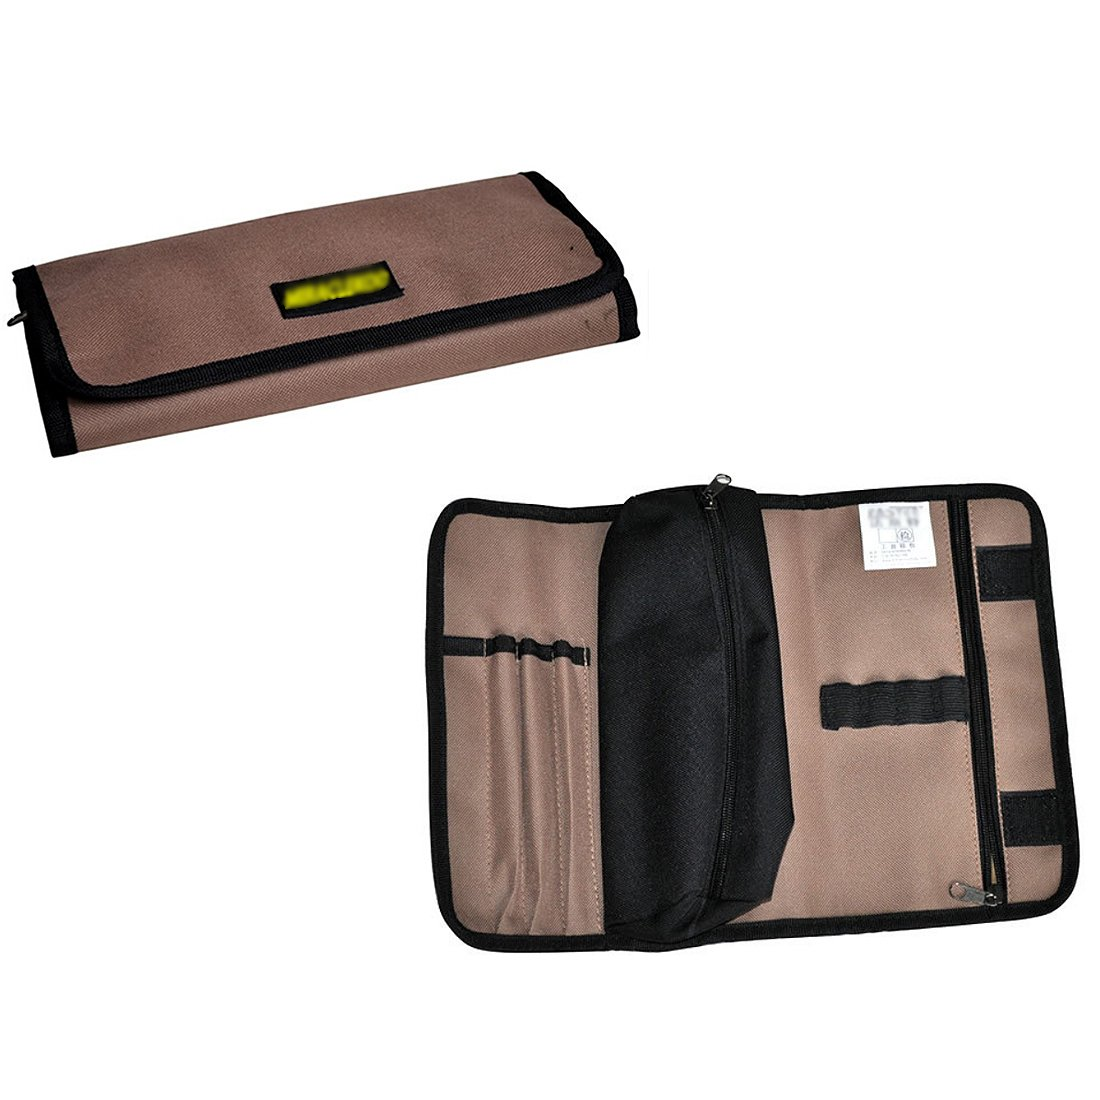 Miraclekoo Roll Multi-purpose Tool Pouch Rolling Tool Bag Multi Pockets Organizer by Miraclekoo